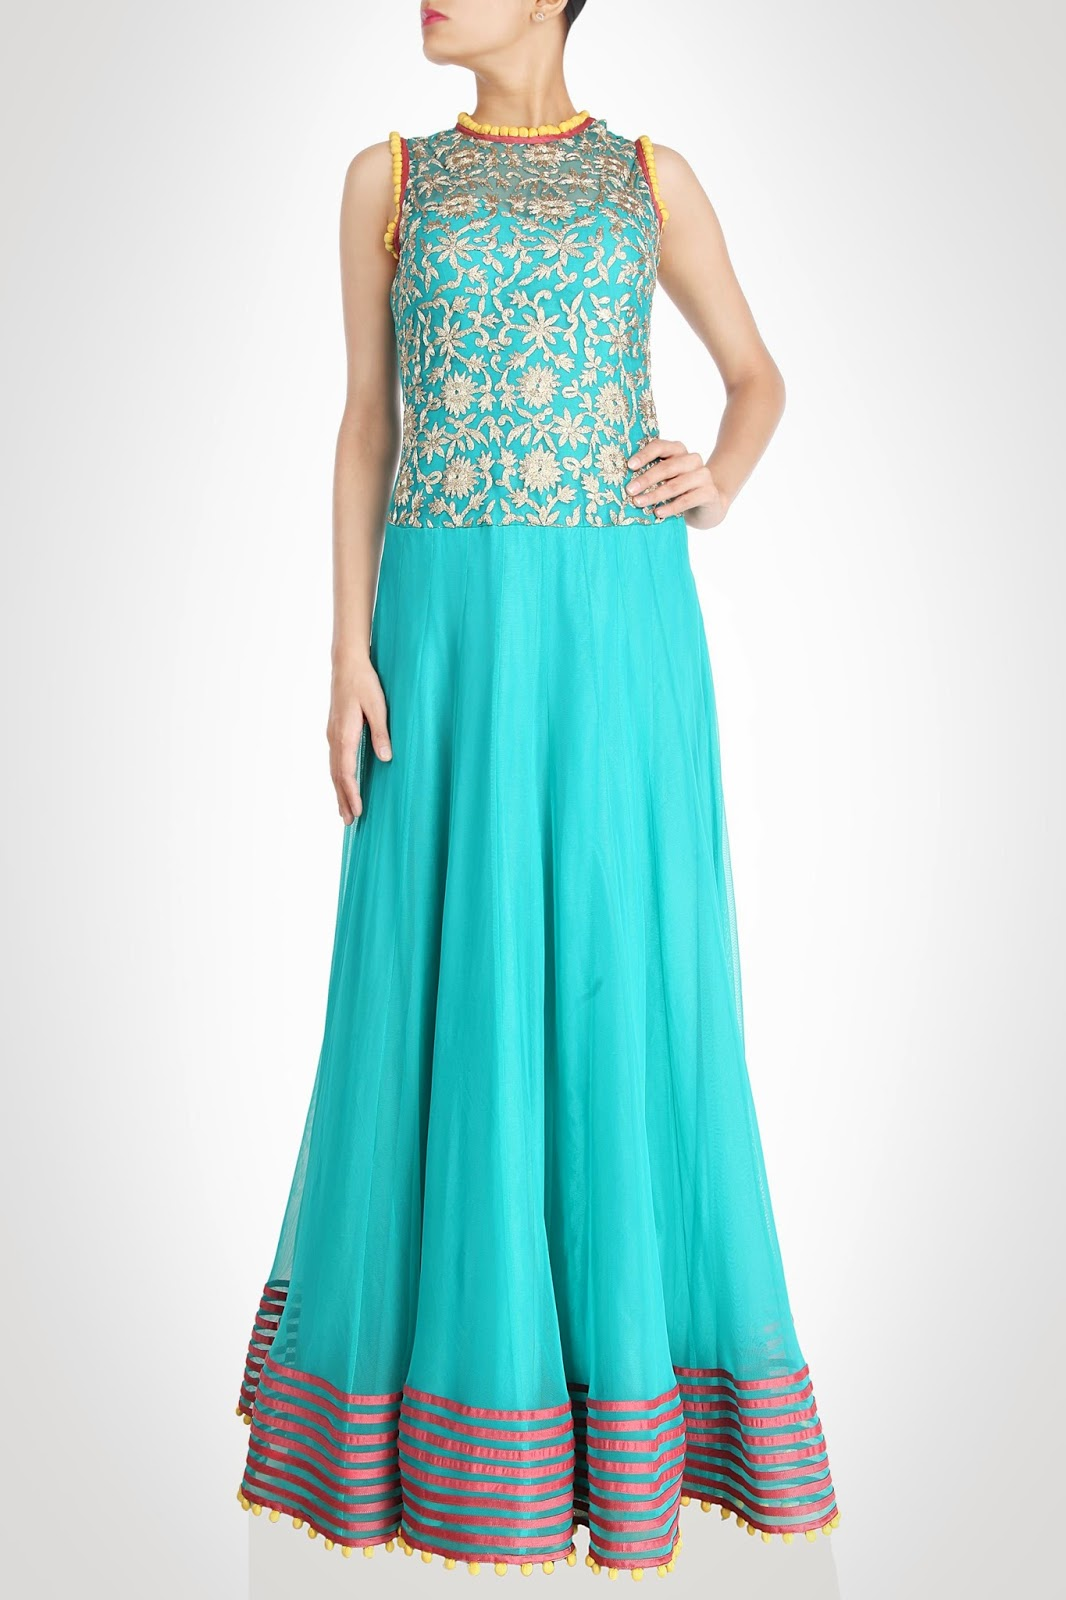 Indian Maxi Dress - Cocktail Dresses 2016